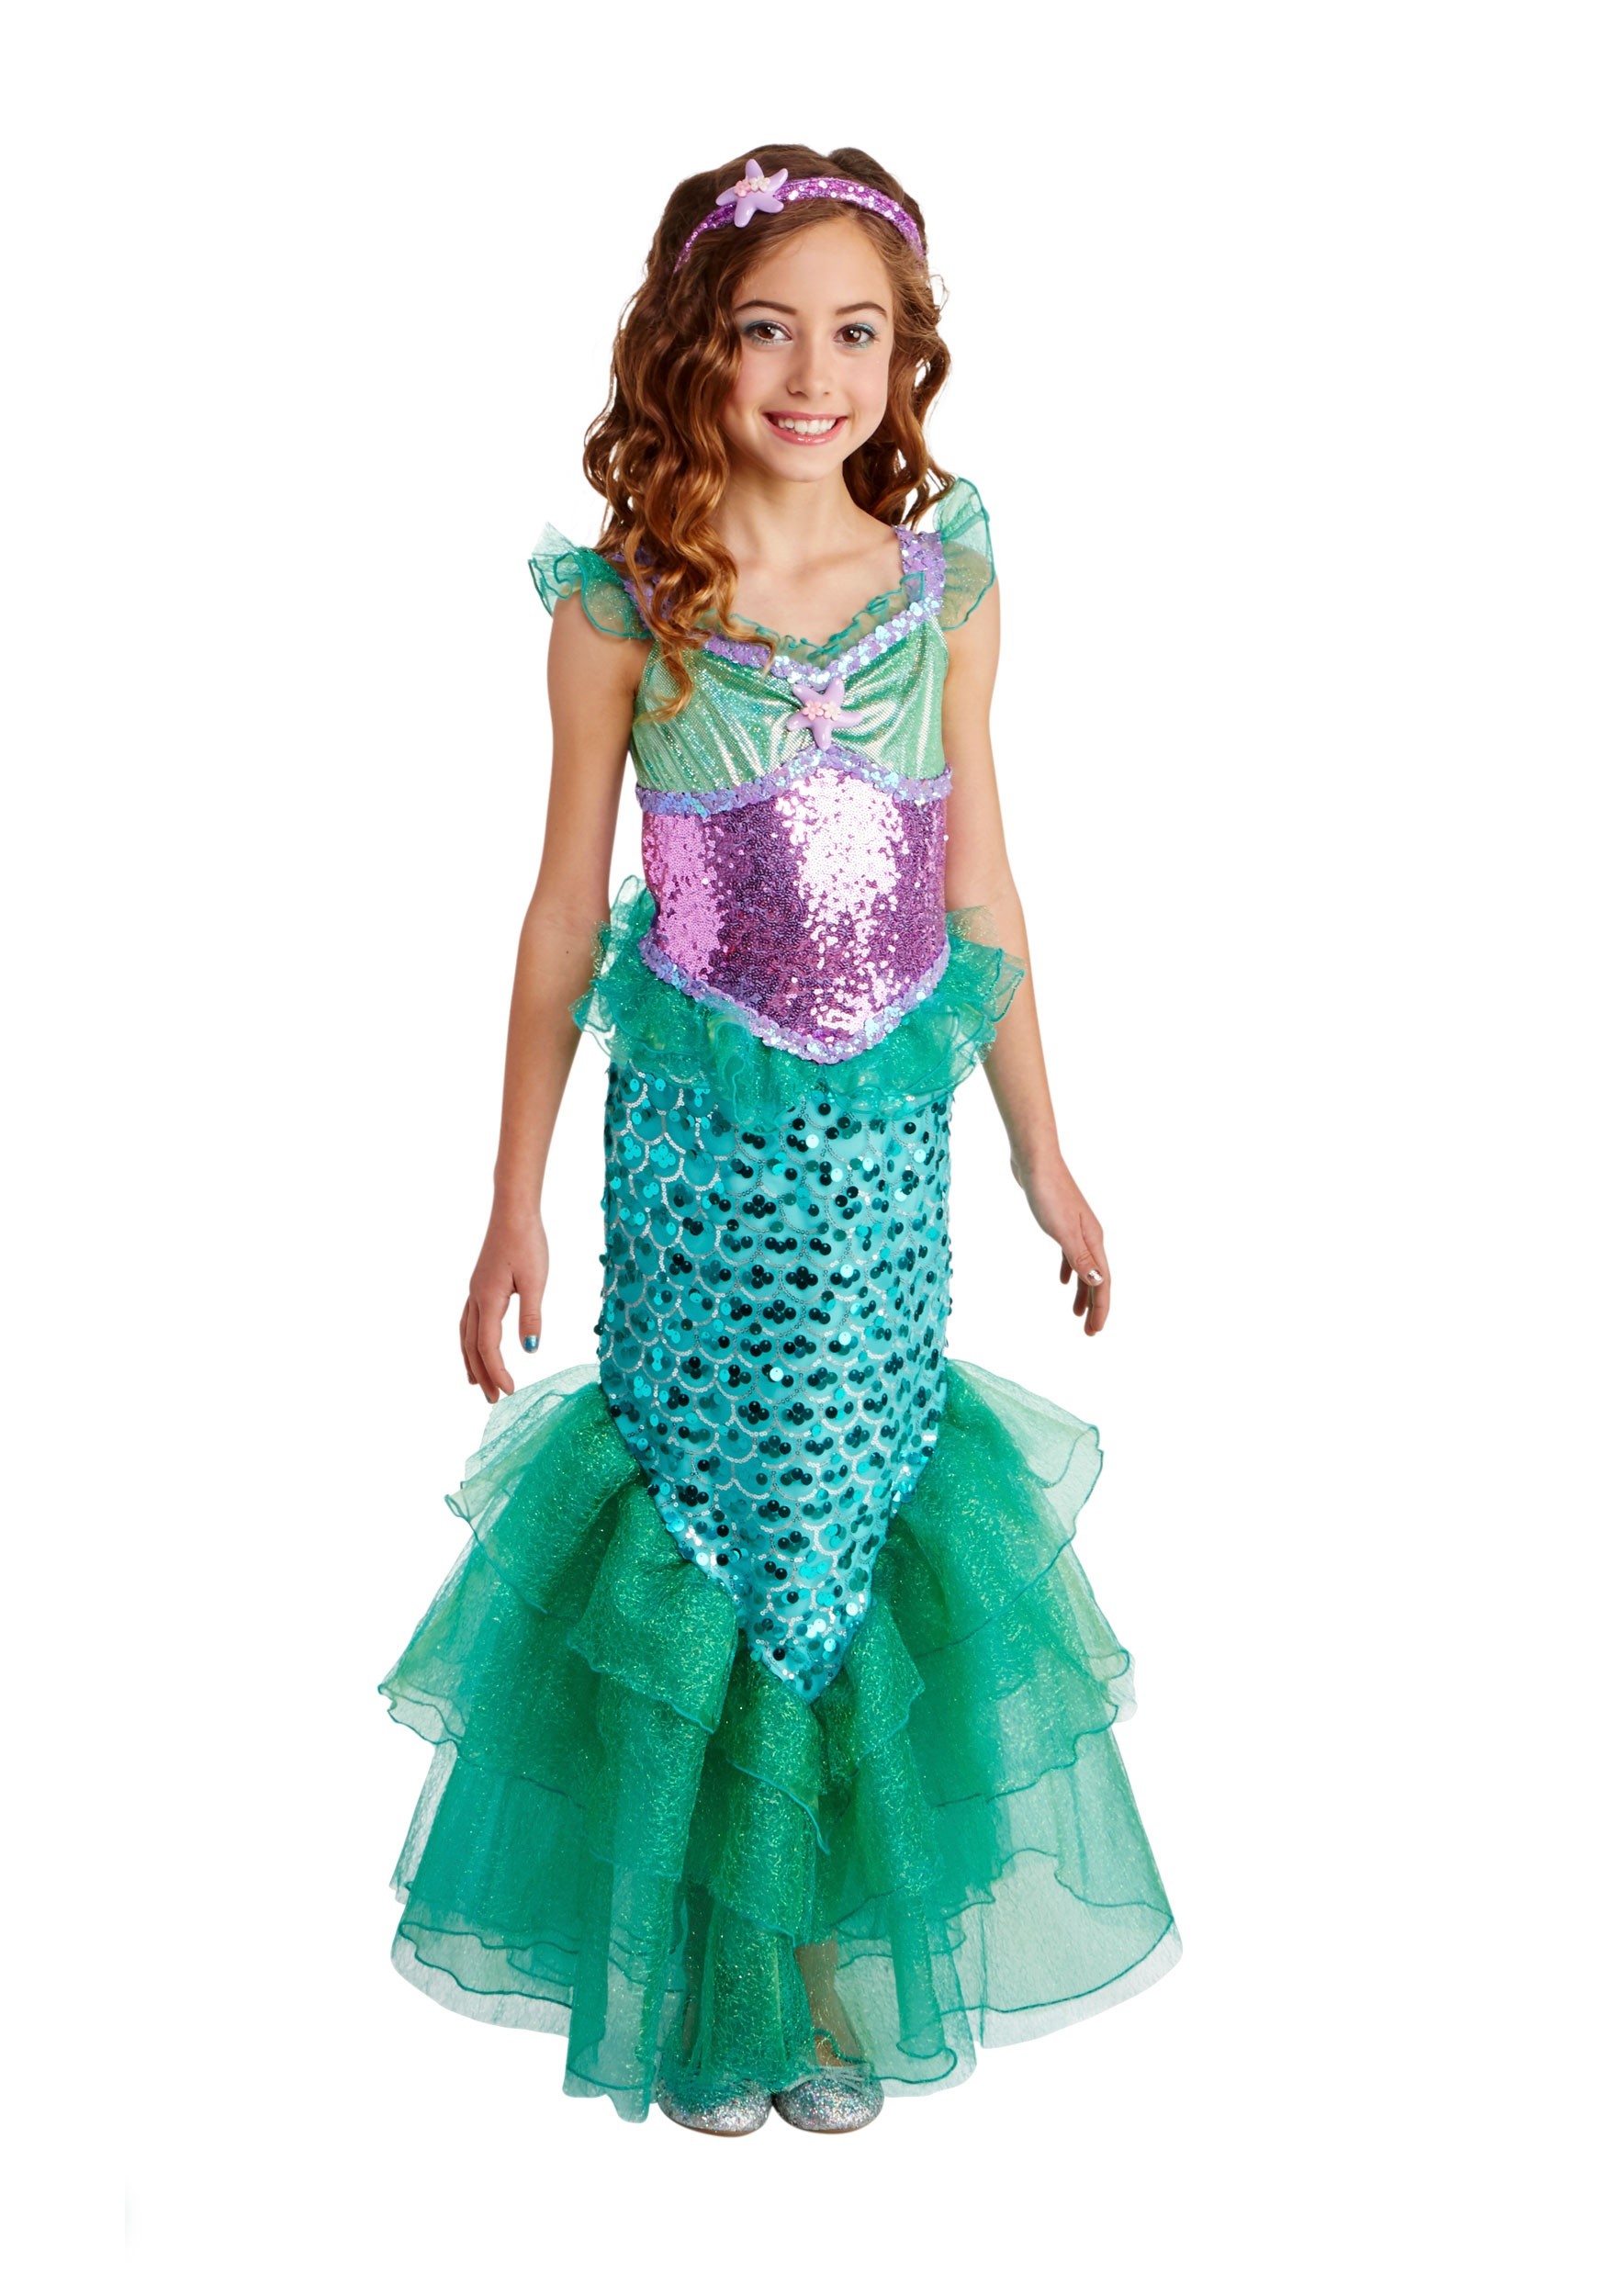 Blue Seas Mermaid Deluxe Girls Costume  sc 1 st  Halloween Costumes & Mermaid Costumes - Adult Child Little Mermaid Costumes